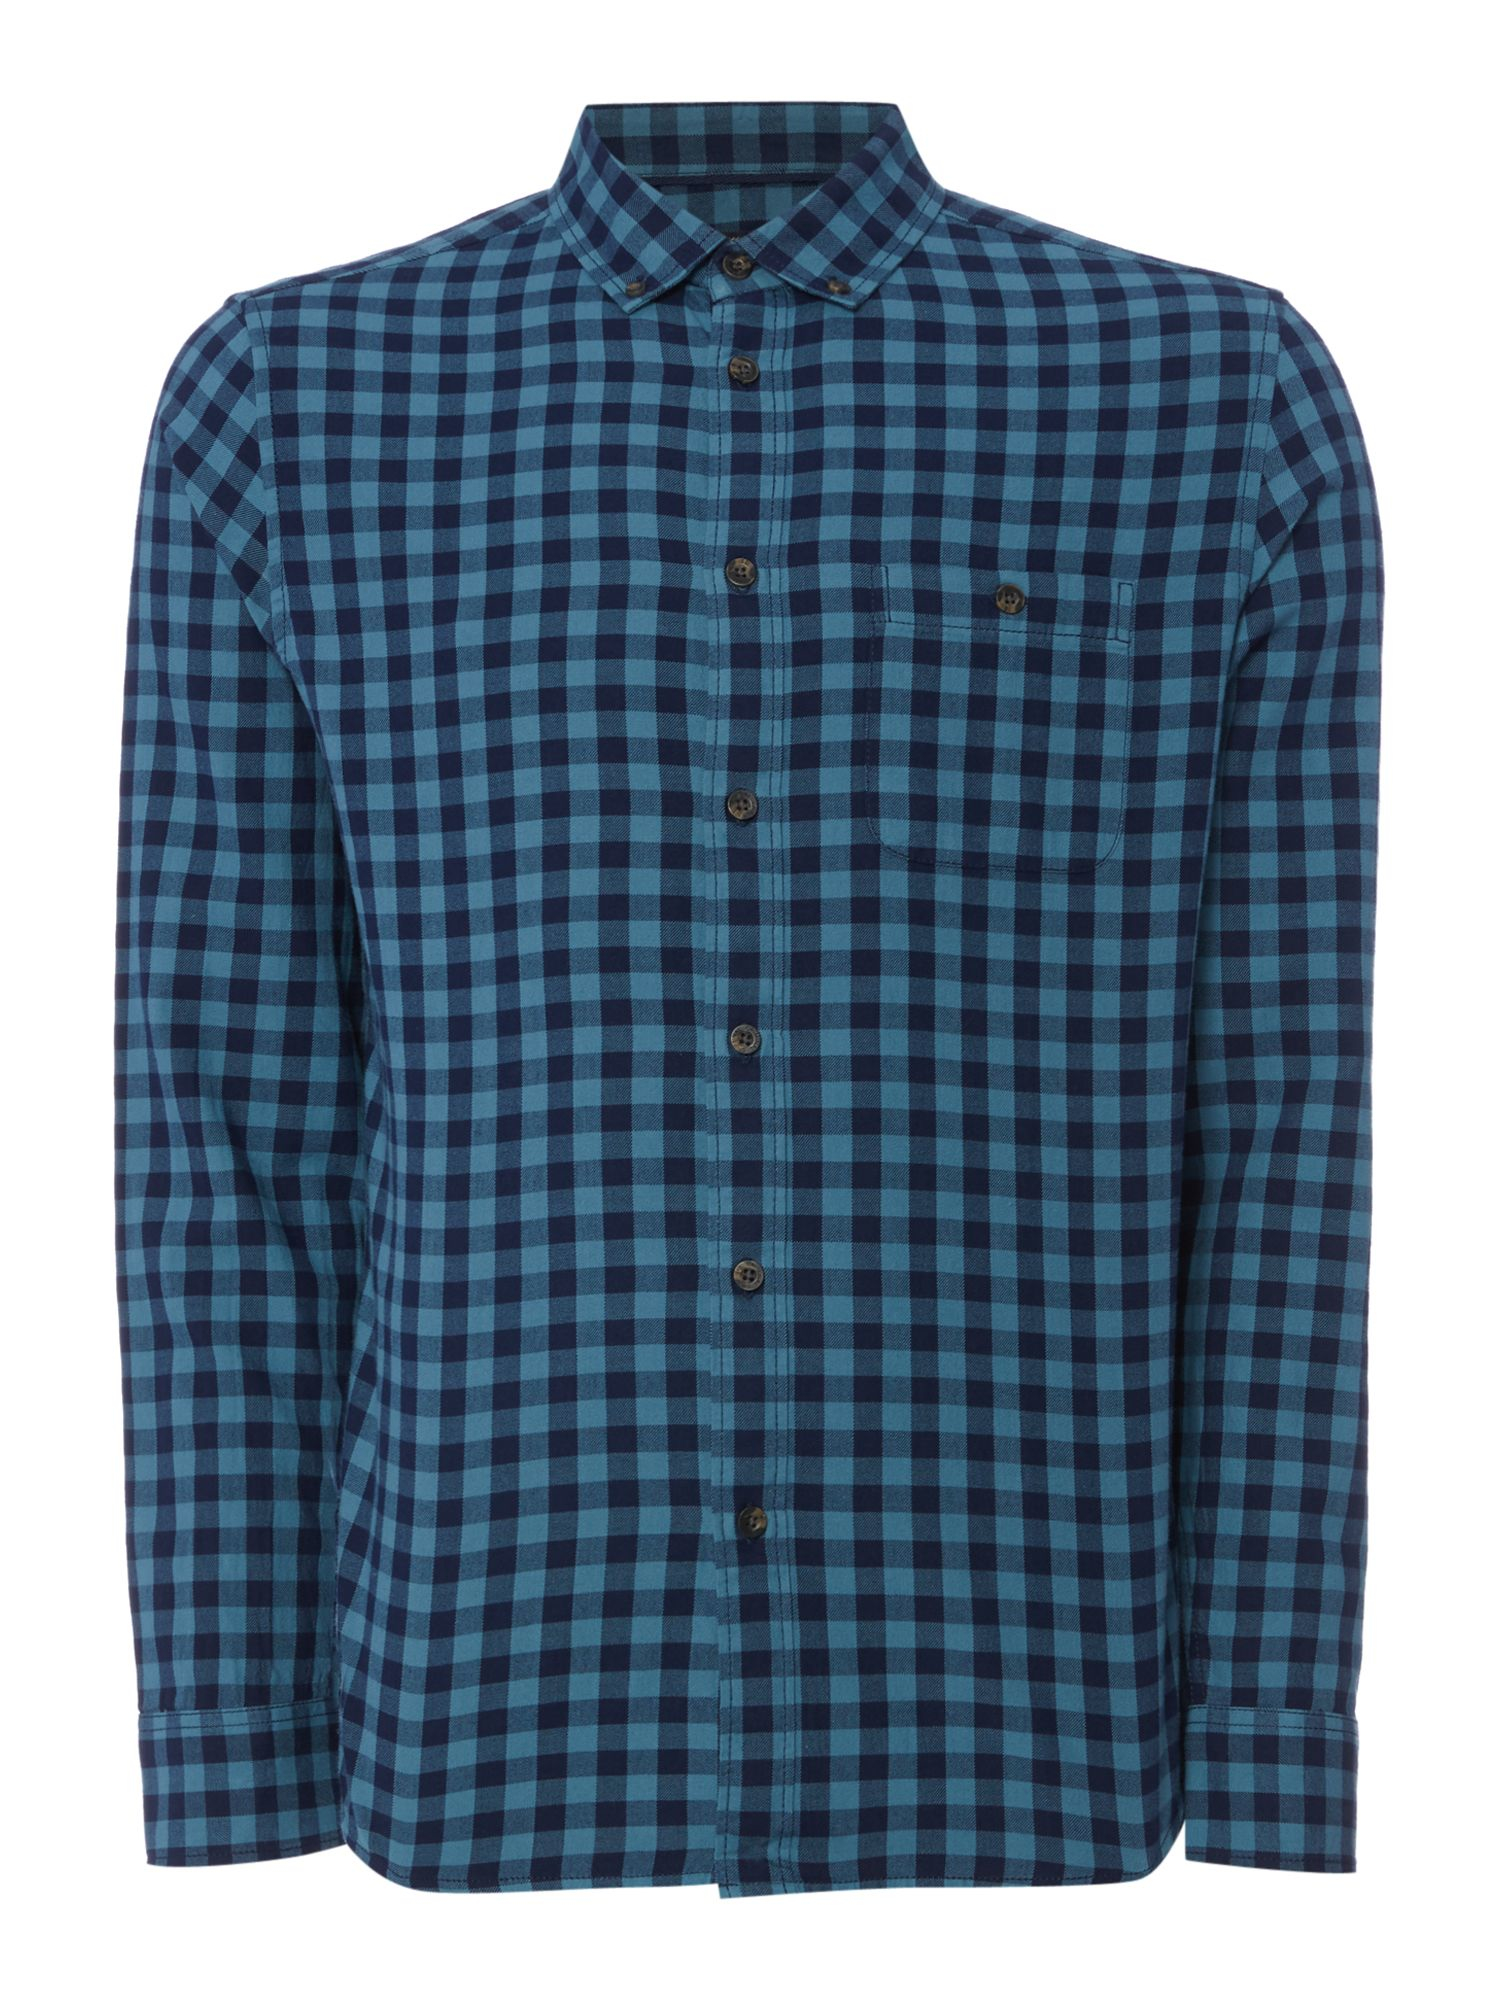 gingham in addition - photo #19